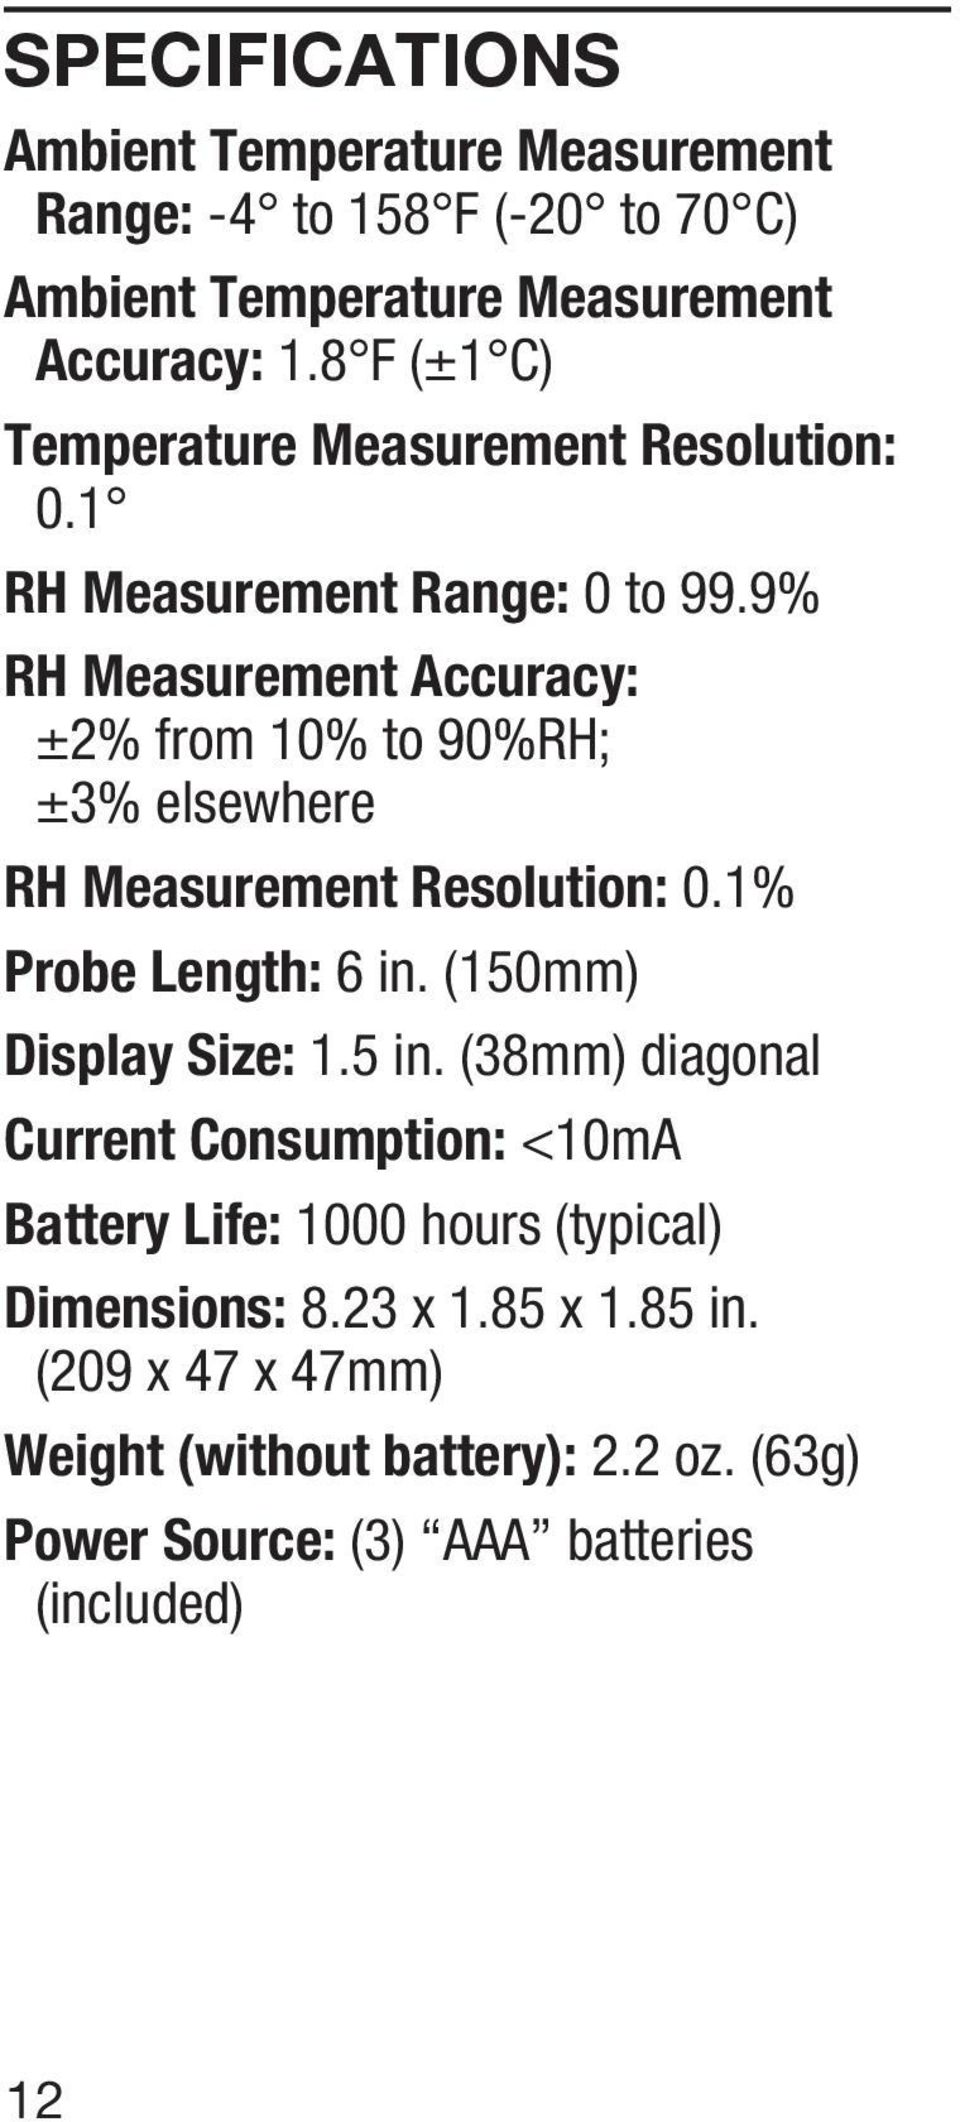 9% RH Measurement Accuracy: ±2% from 10% to 90%RH; ±3% elsewhere RH Measurement Resolution: 0.1% Probe Length: 6 in. (150mm) Display Size: 1.